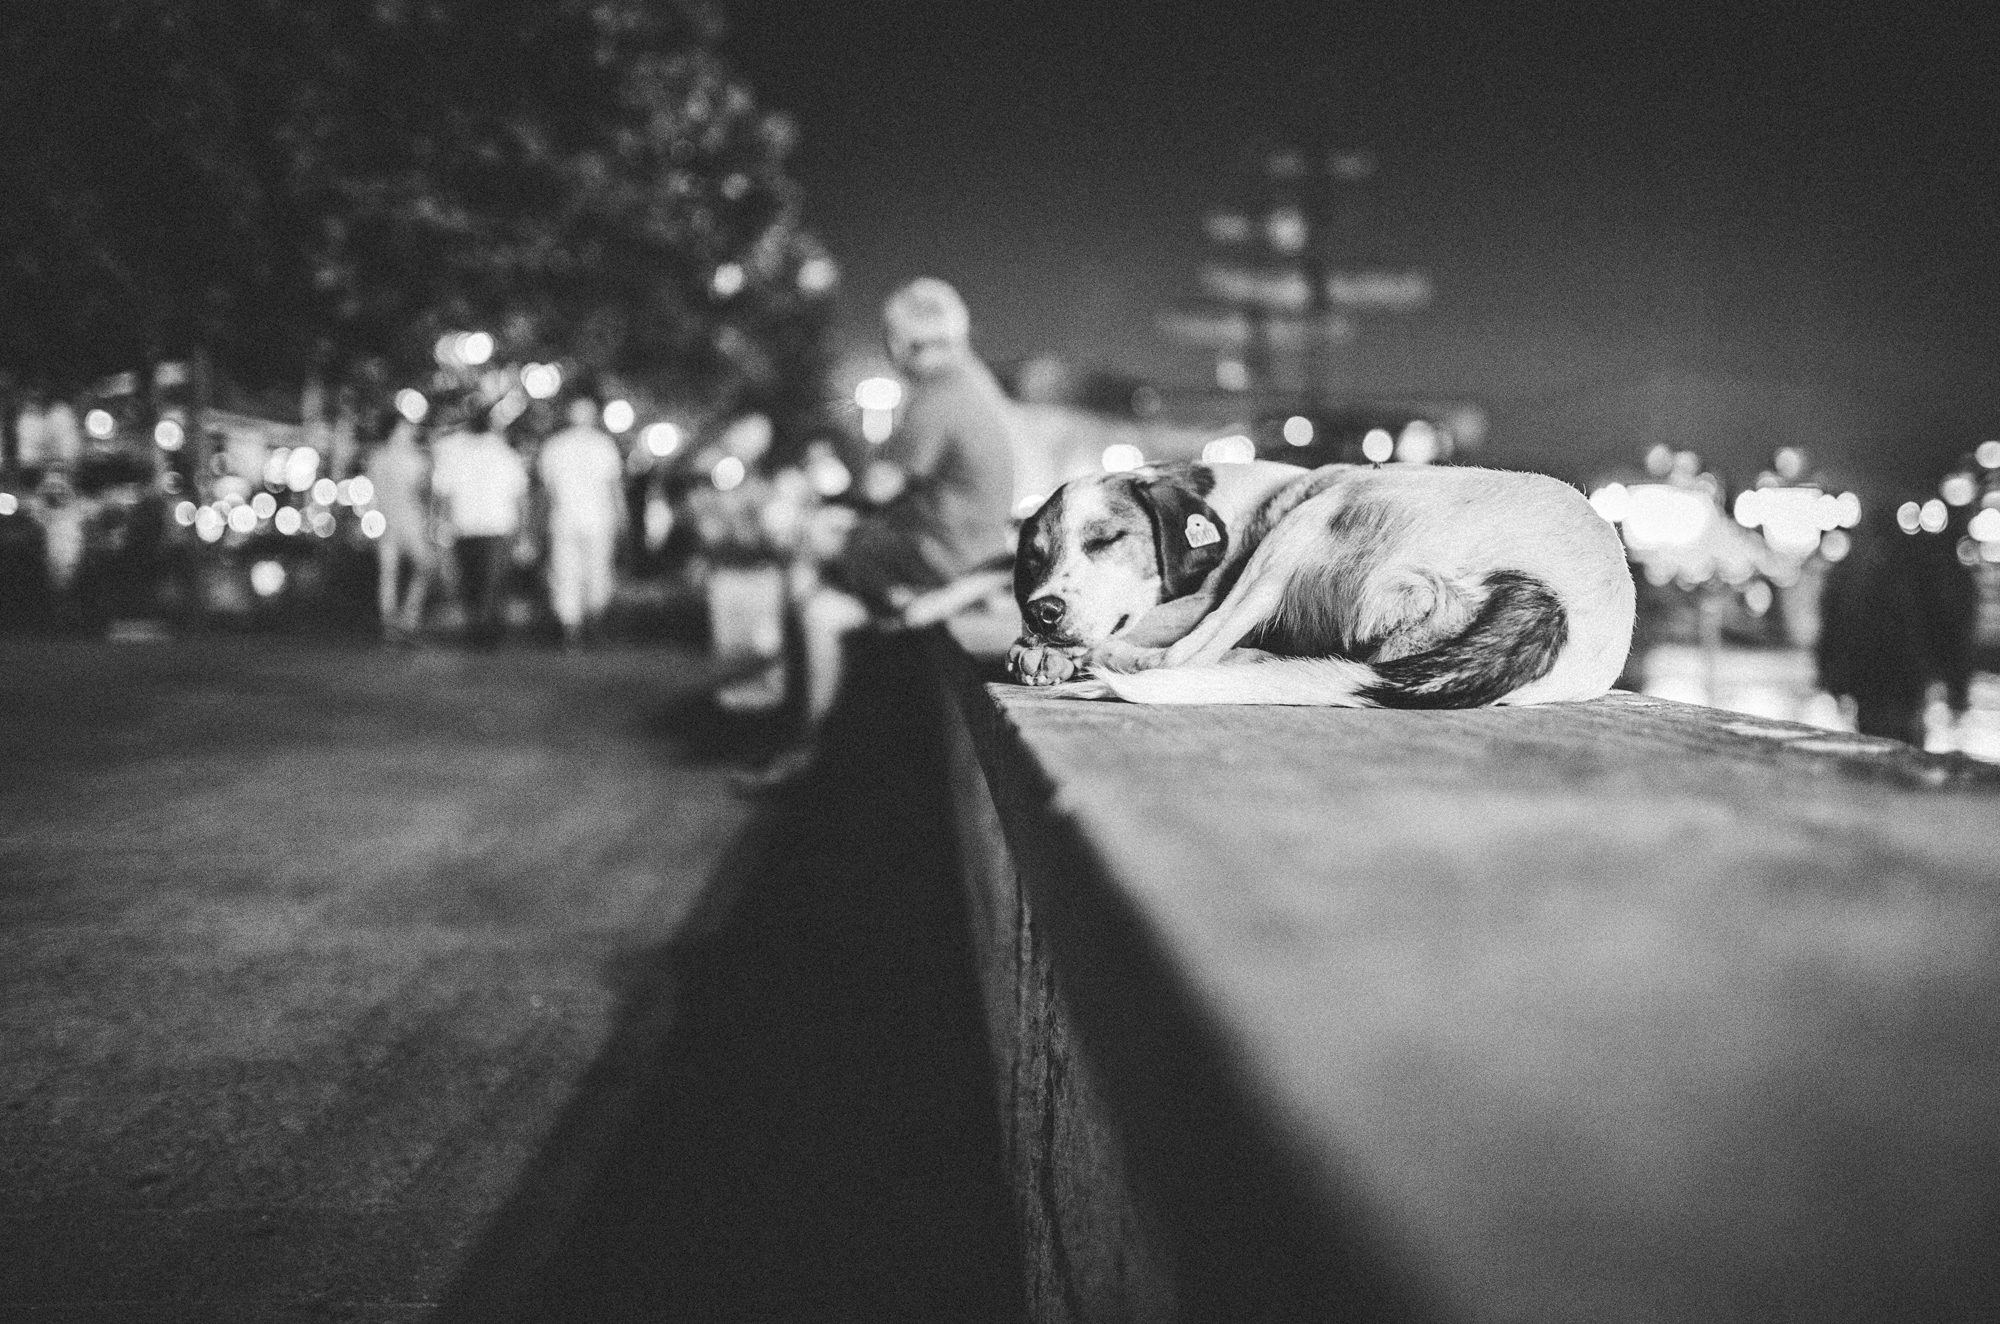 A street dog lying on a bench in Skopje, Macedonia.